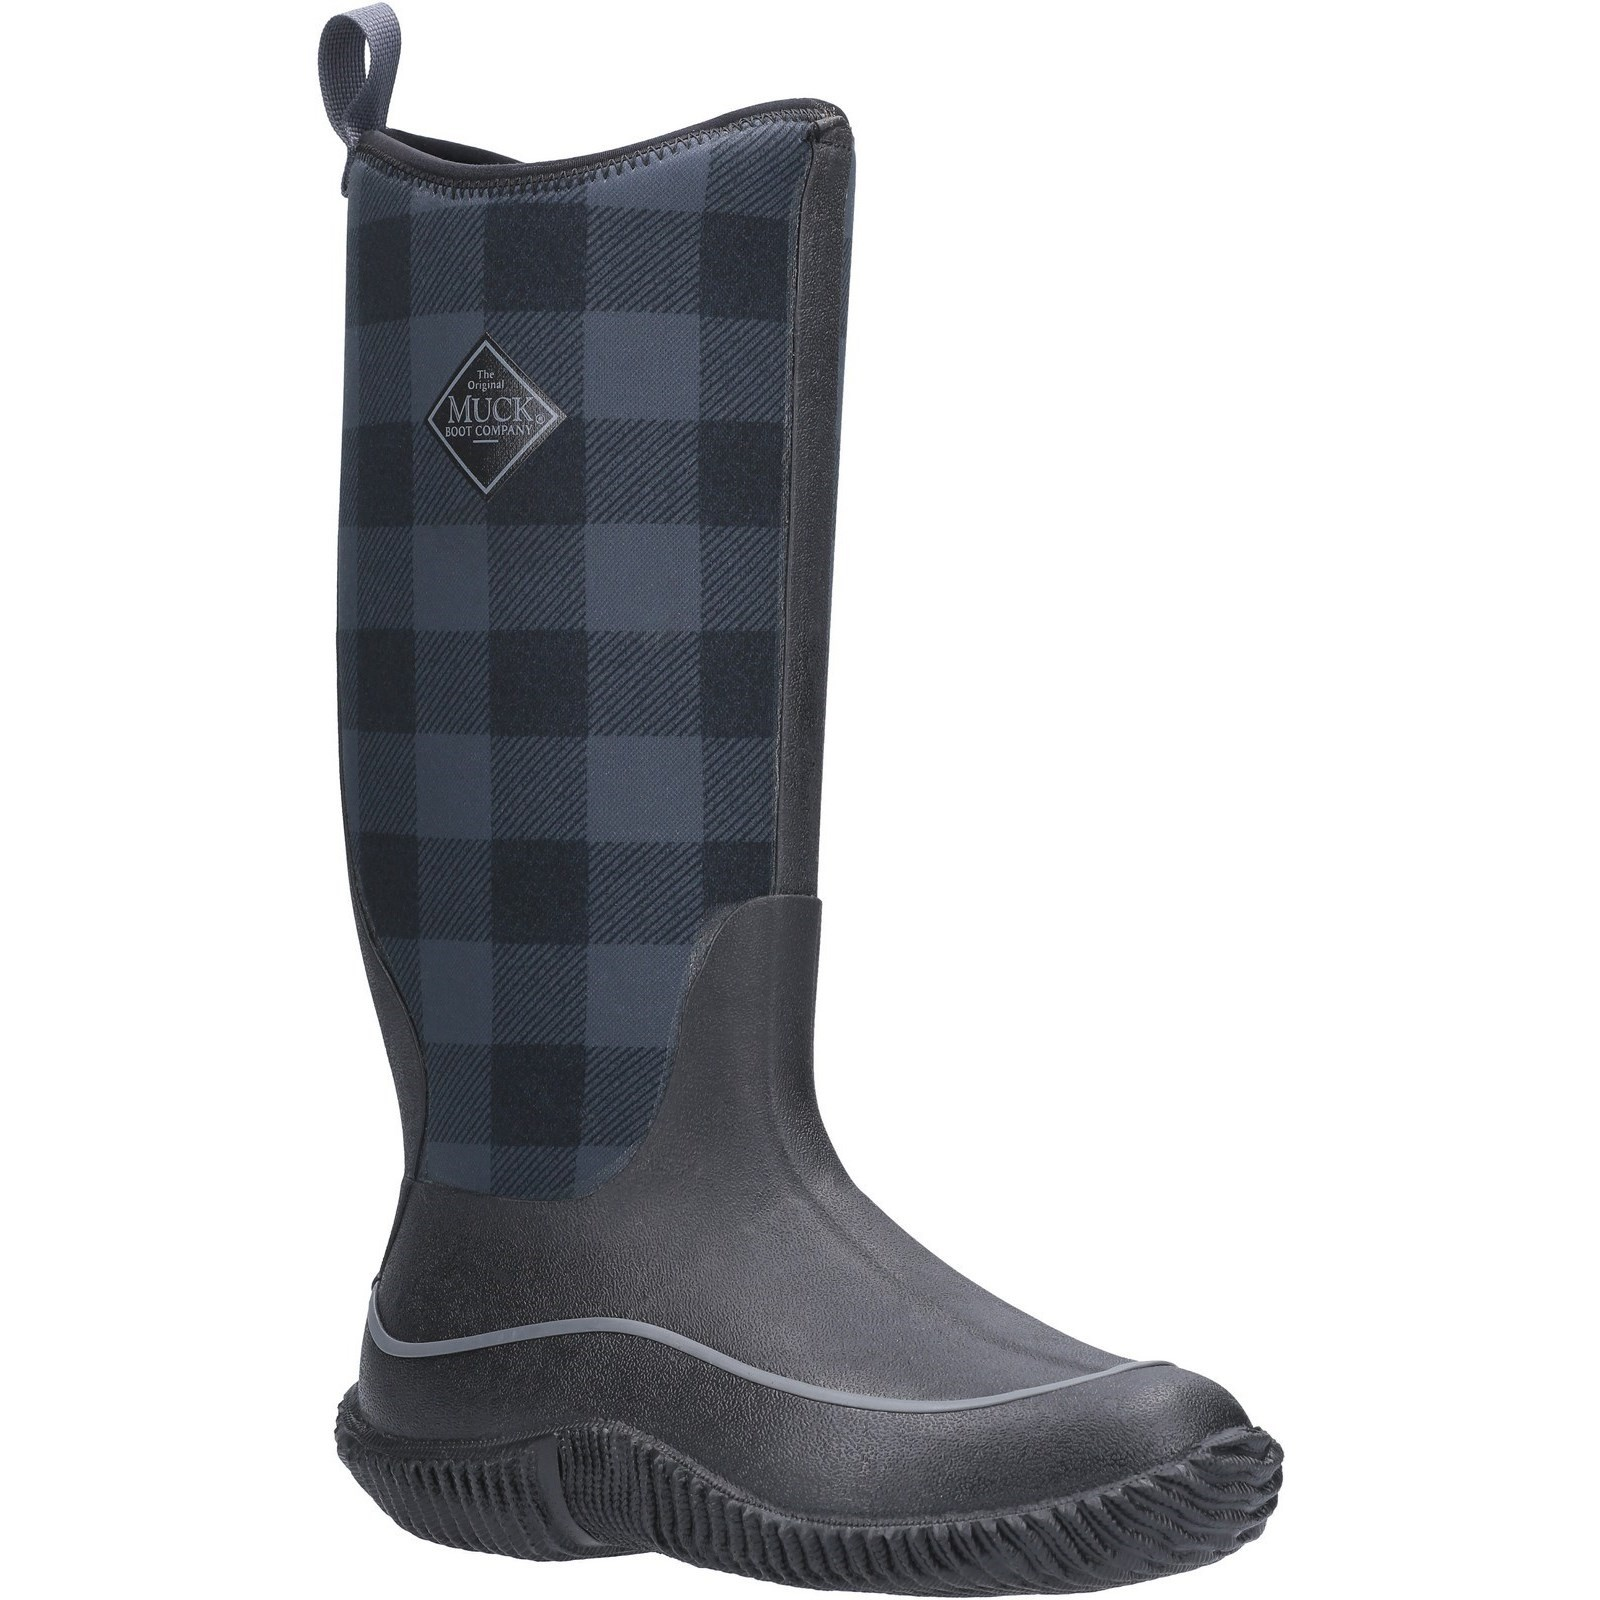 Muck Boot Womens Hale Grey Plaid Size 7 UK